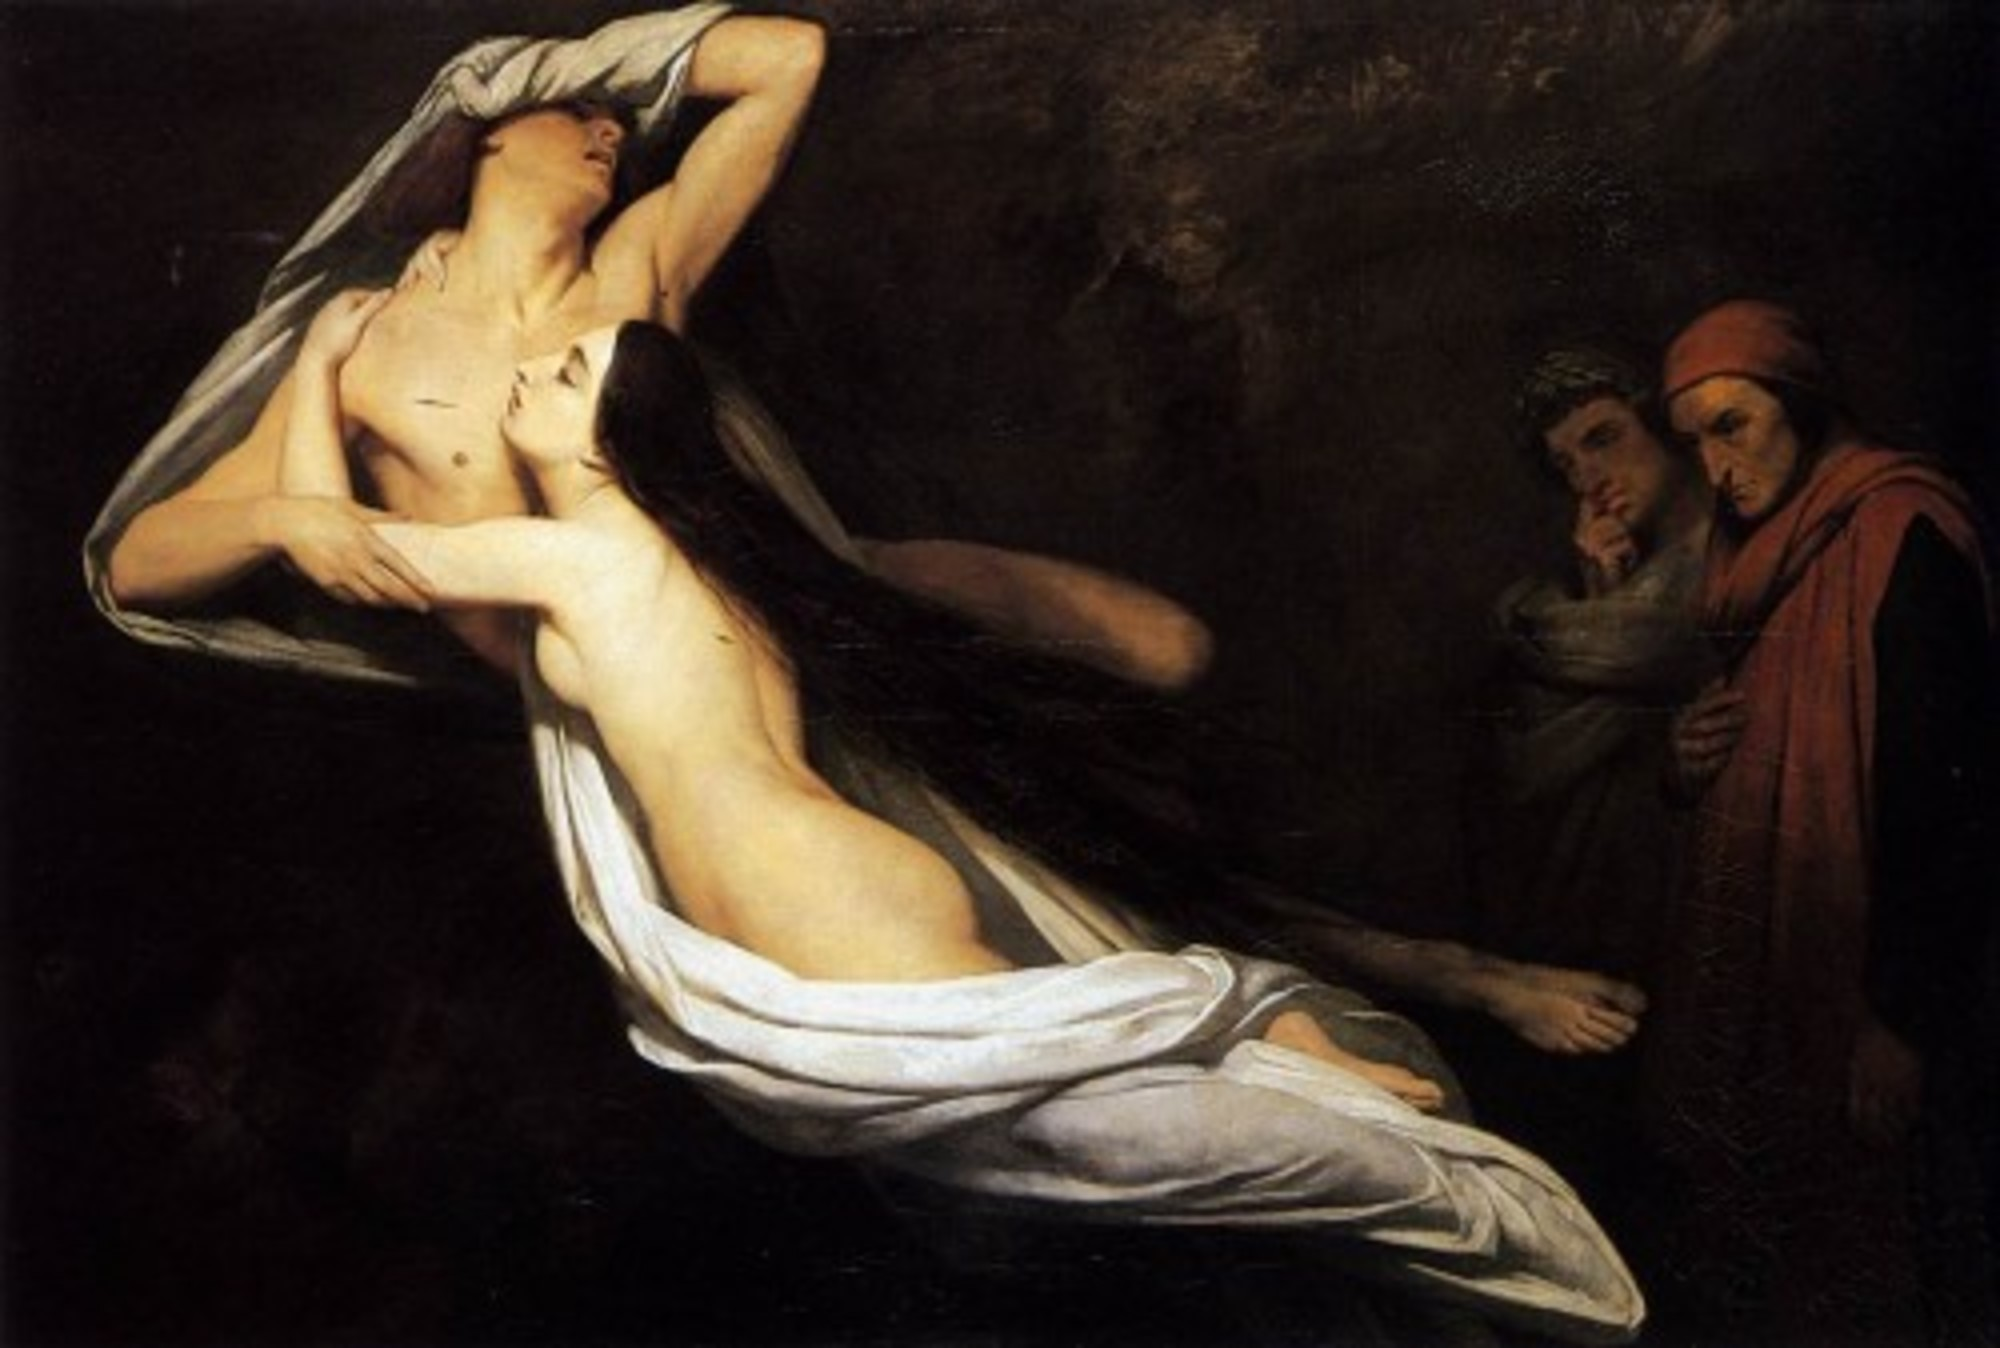 1835-Ary-Scheffer---The-Ghosts-of-Paolo-and-Francesca-Appear-to-Dante-and-Virgil.jpg